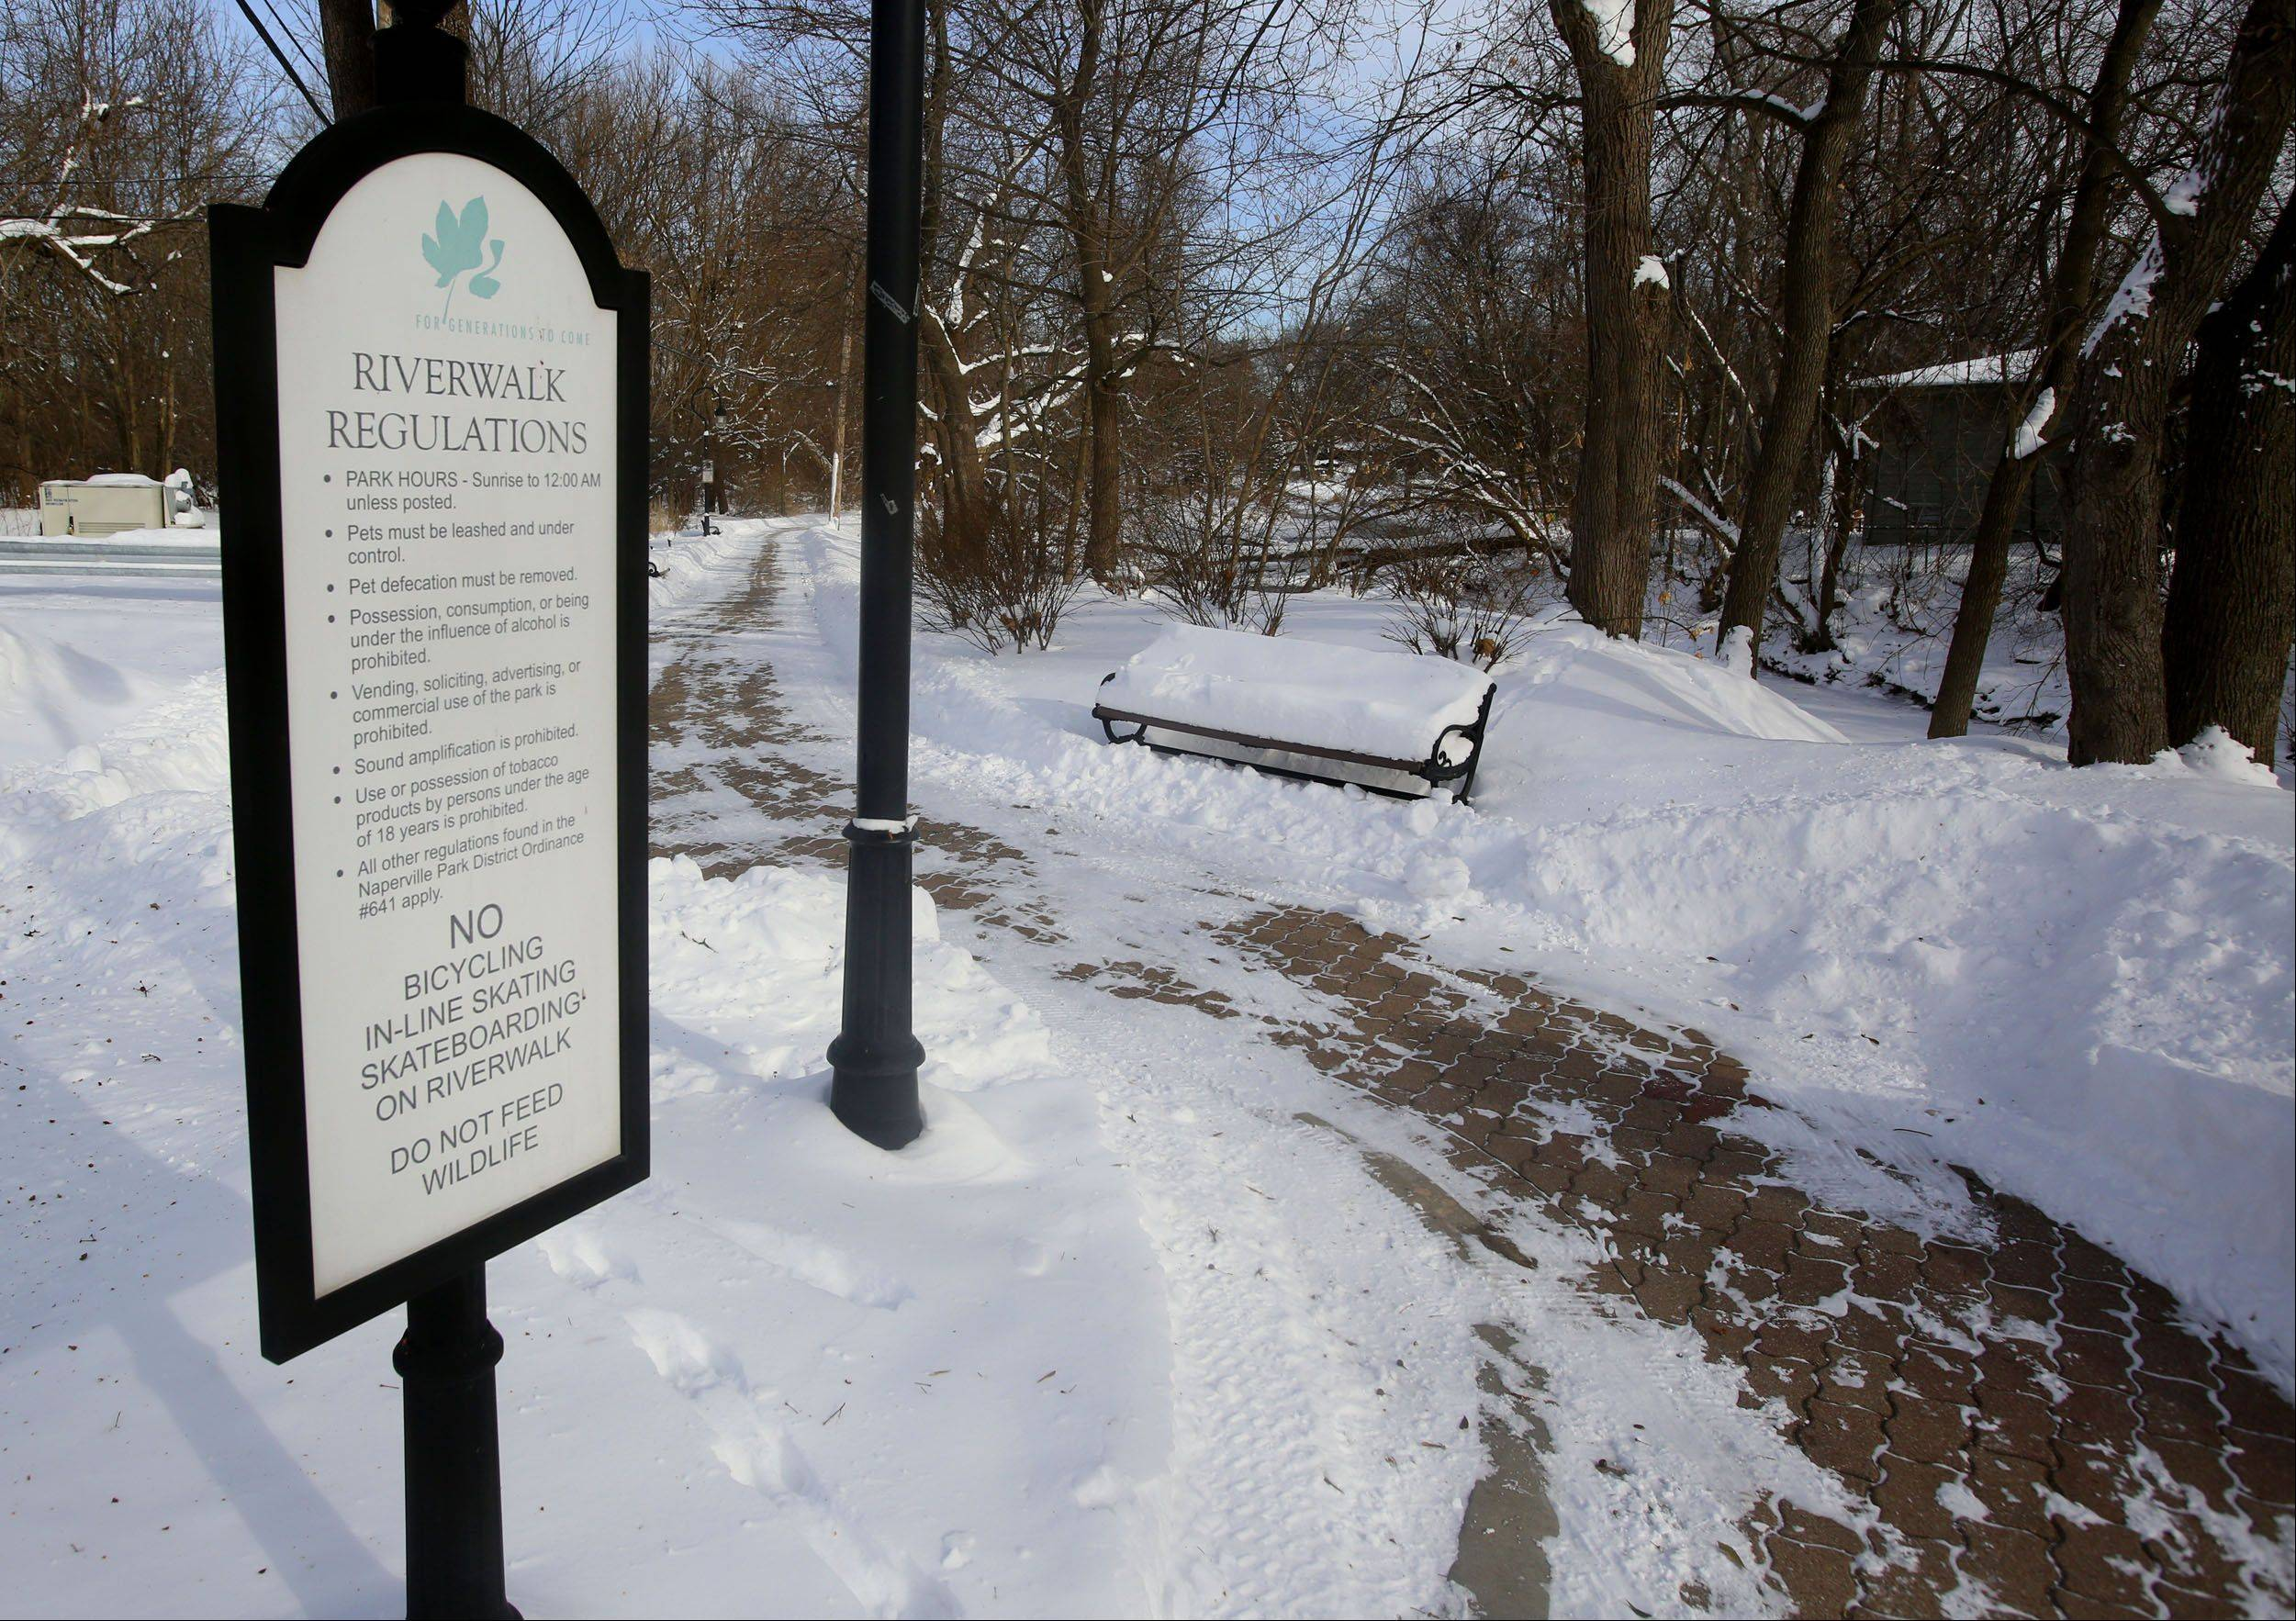 Naperville to consider Riverwalk boundary extension